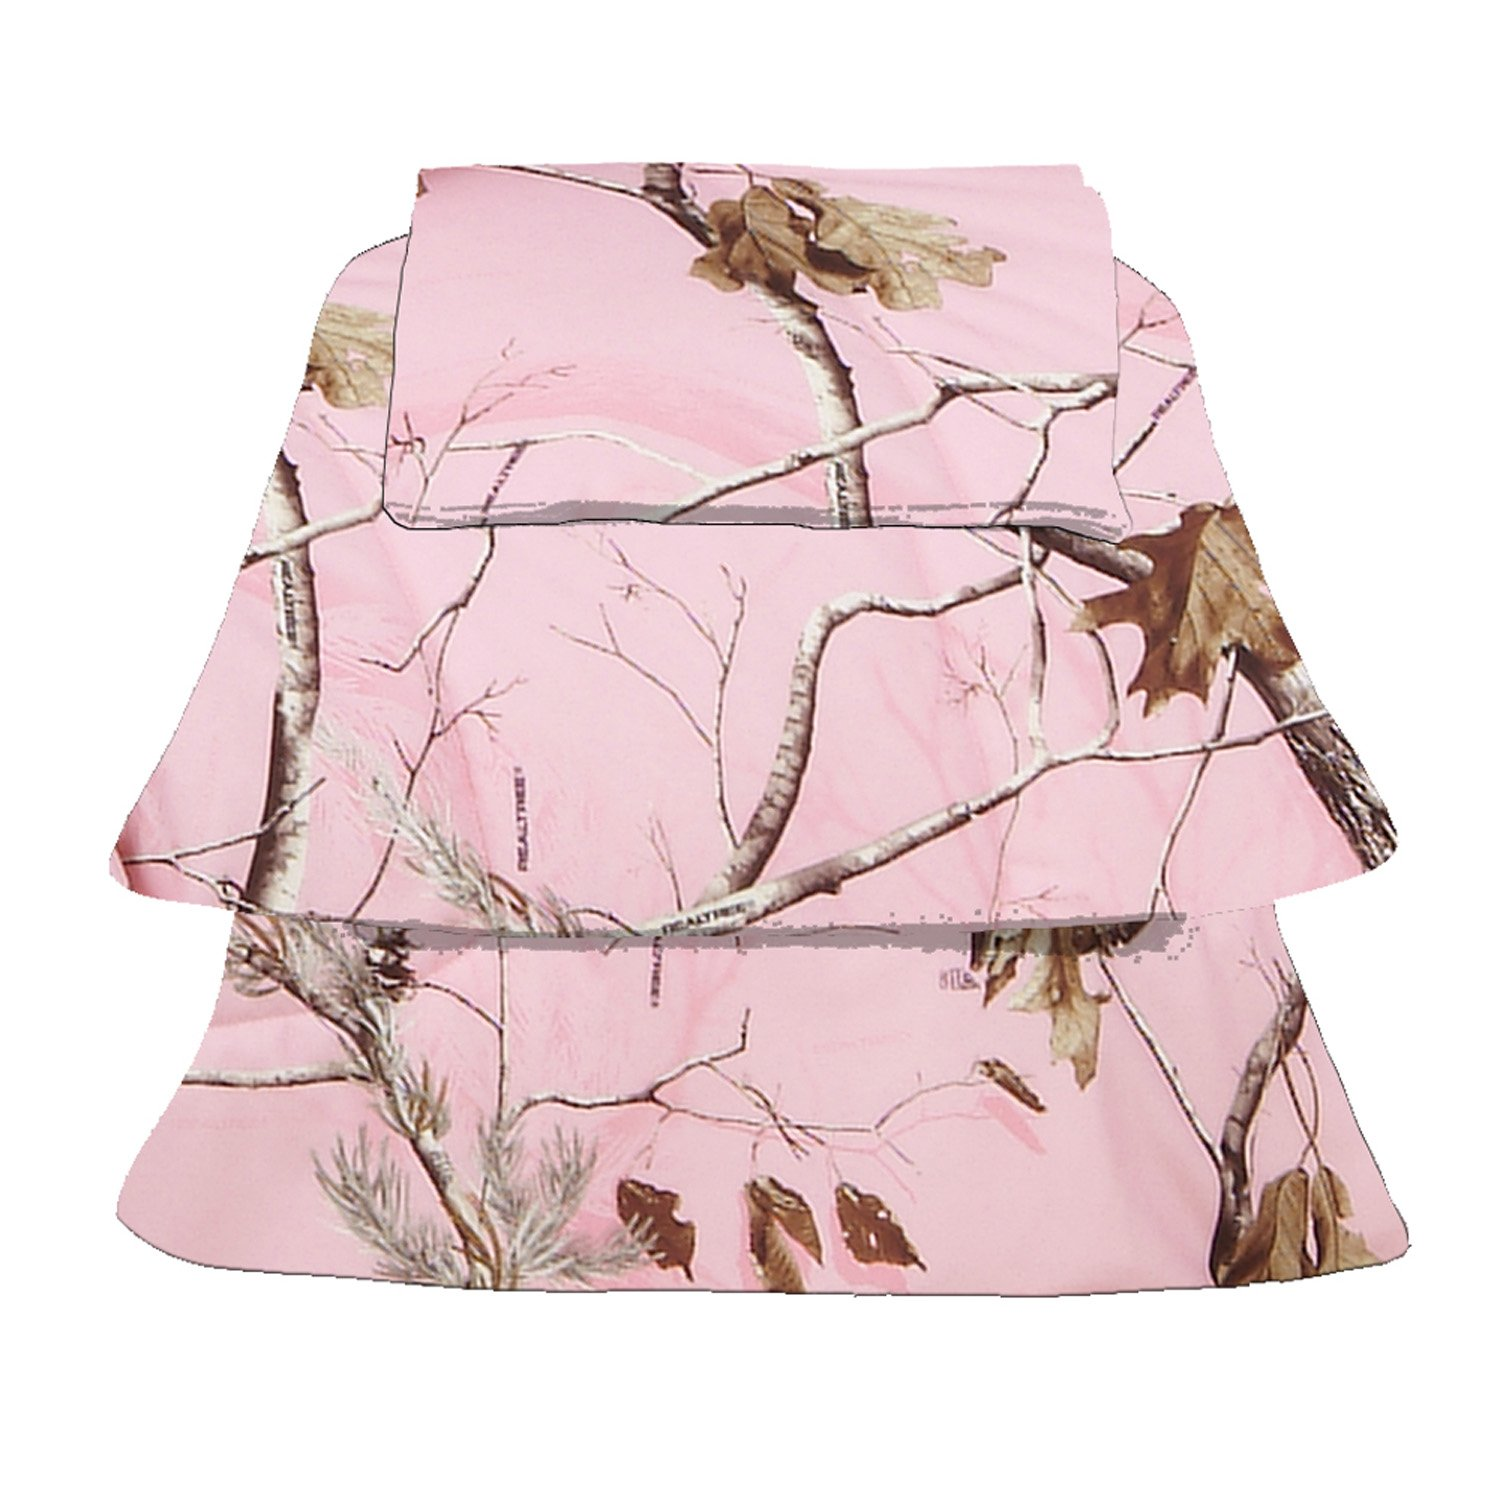 Realtree APC Pink Sheet Set, Twin